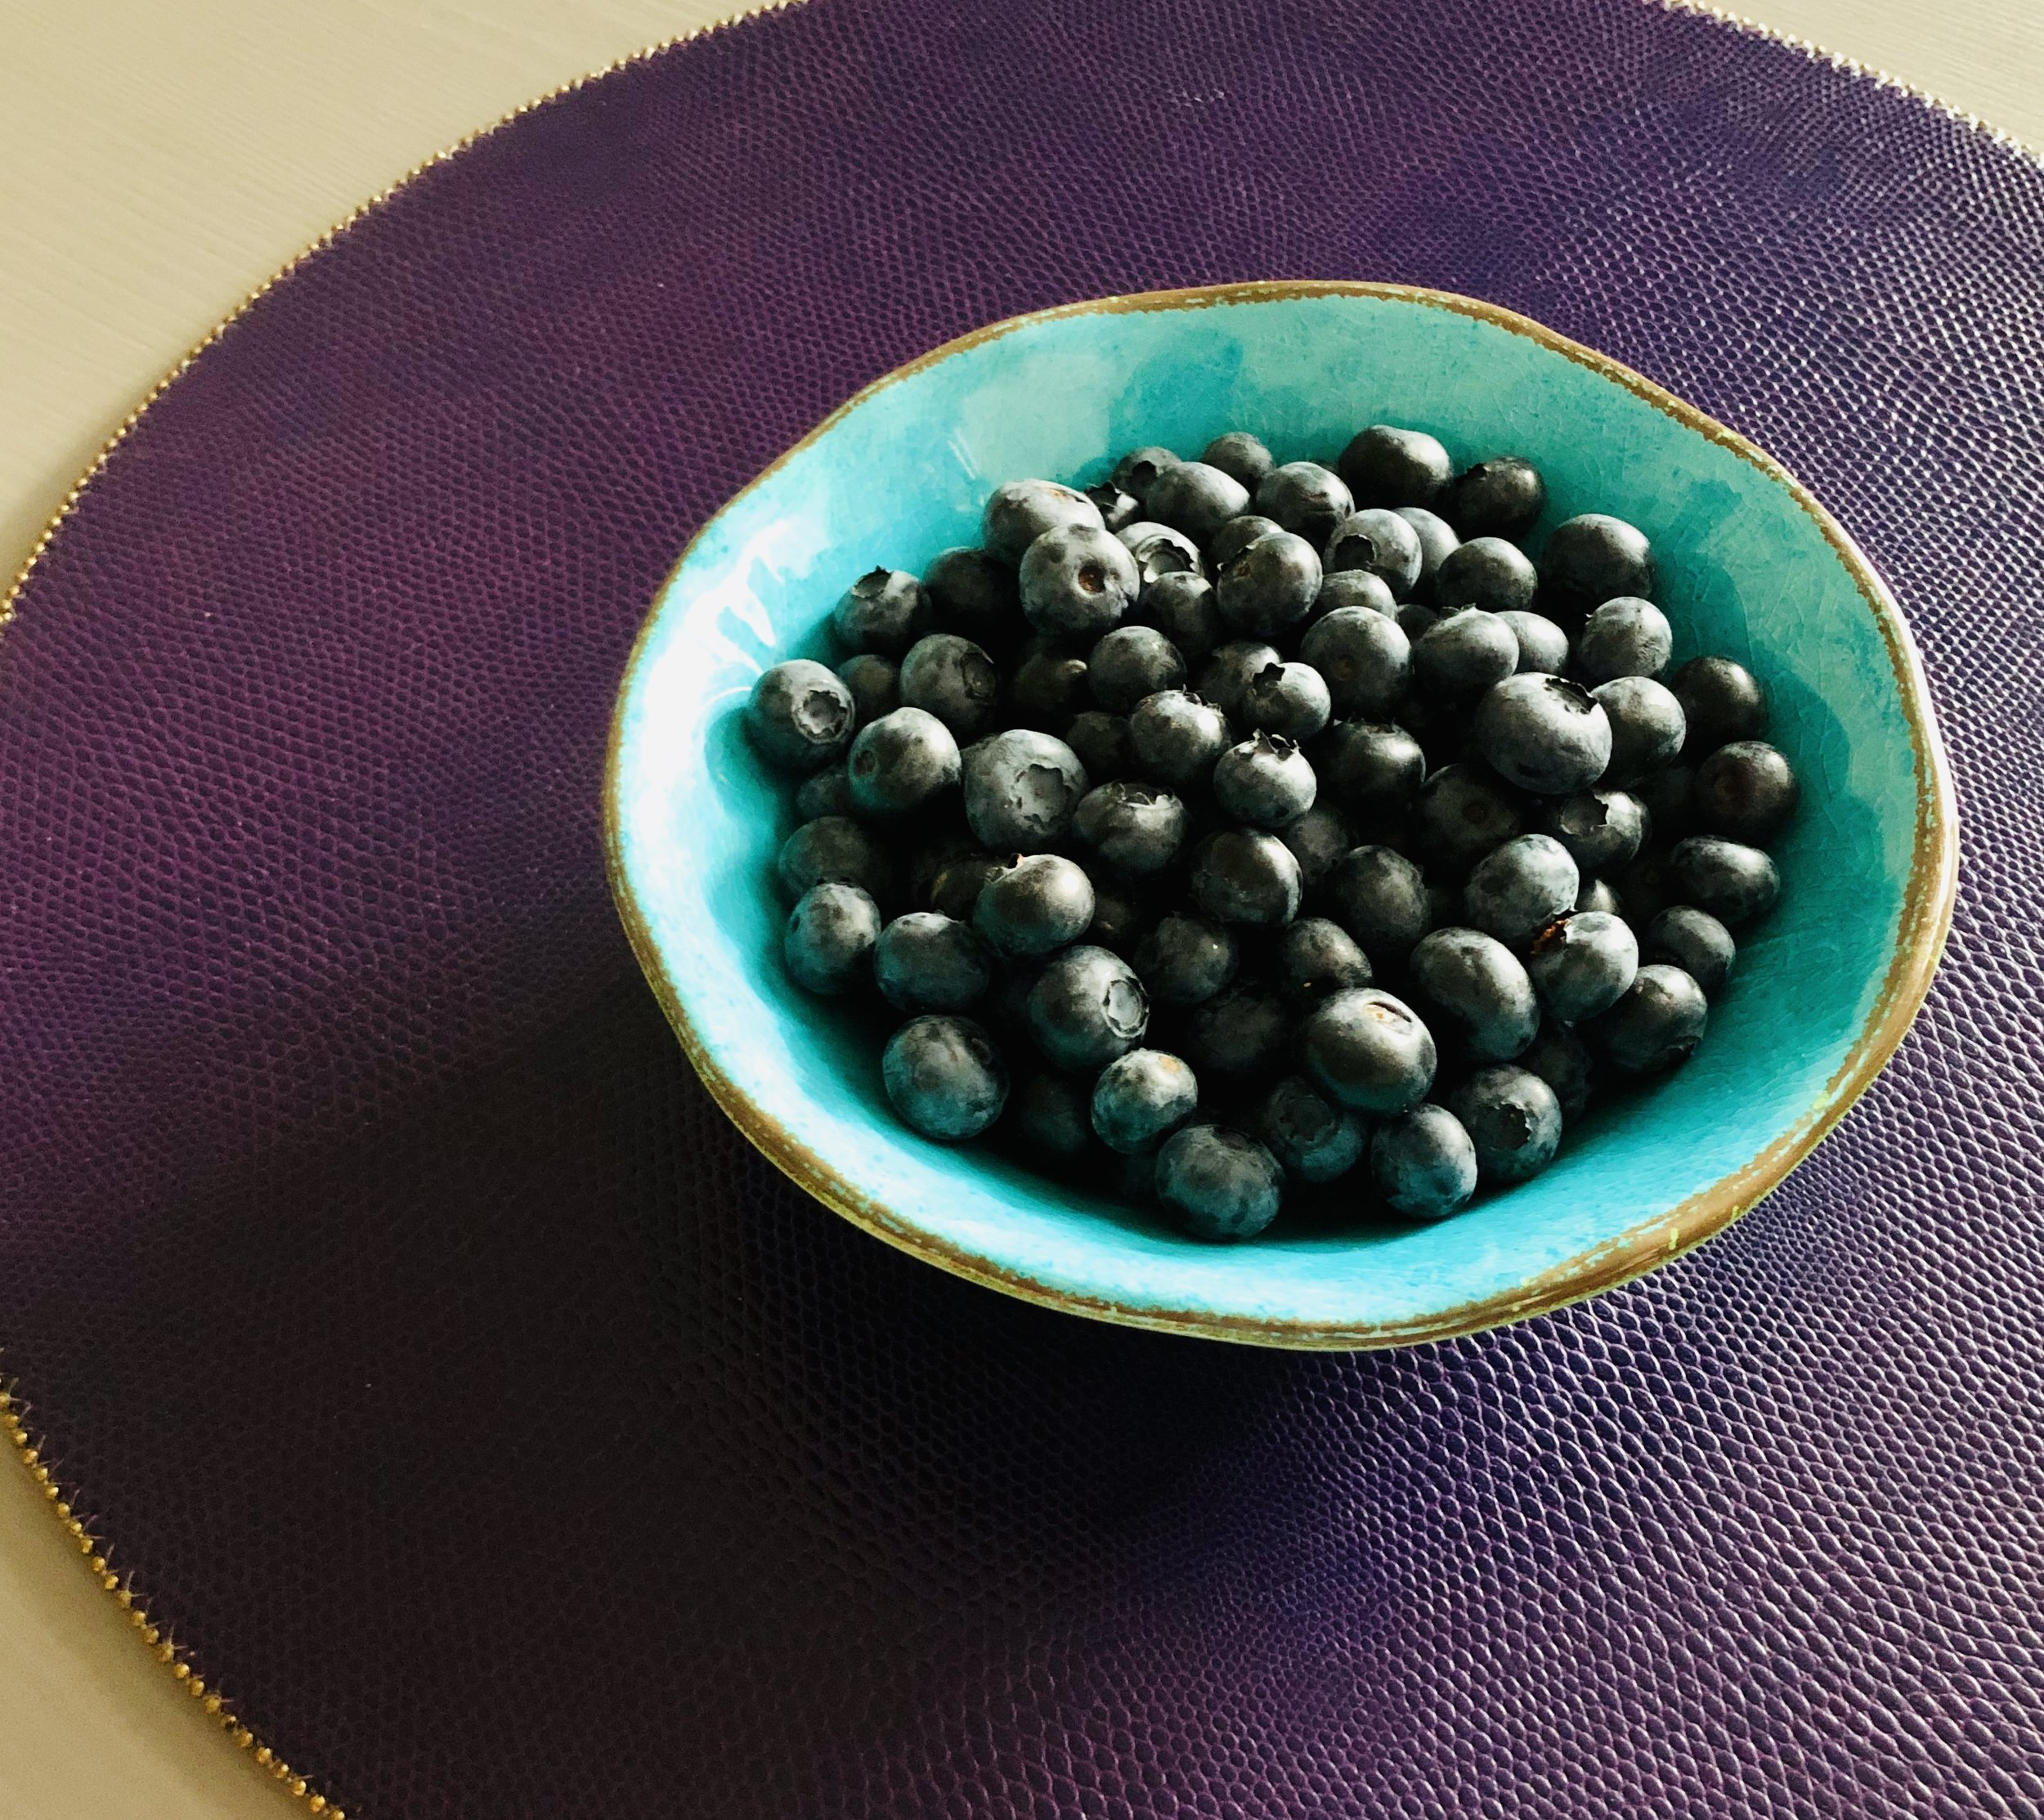 Blueberries off center.jpg